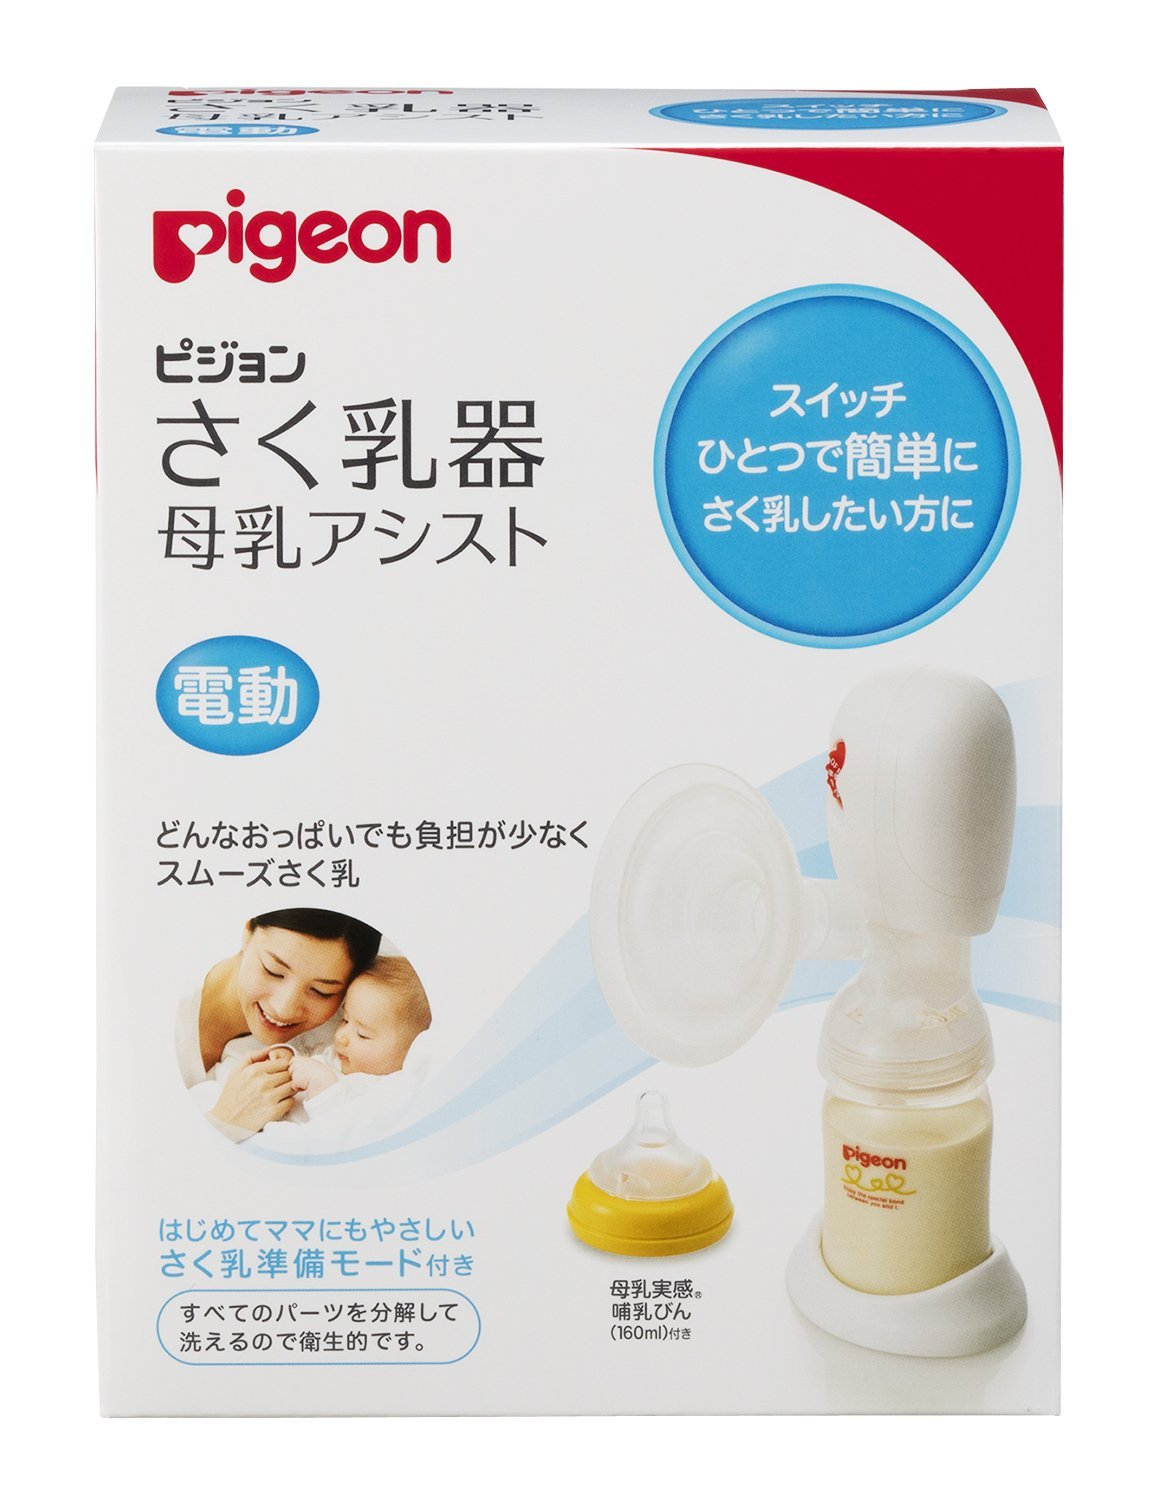 Pigeon breast pump with electric